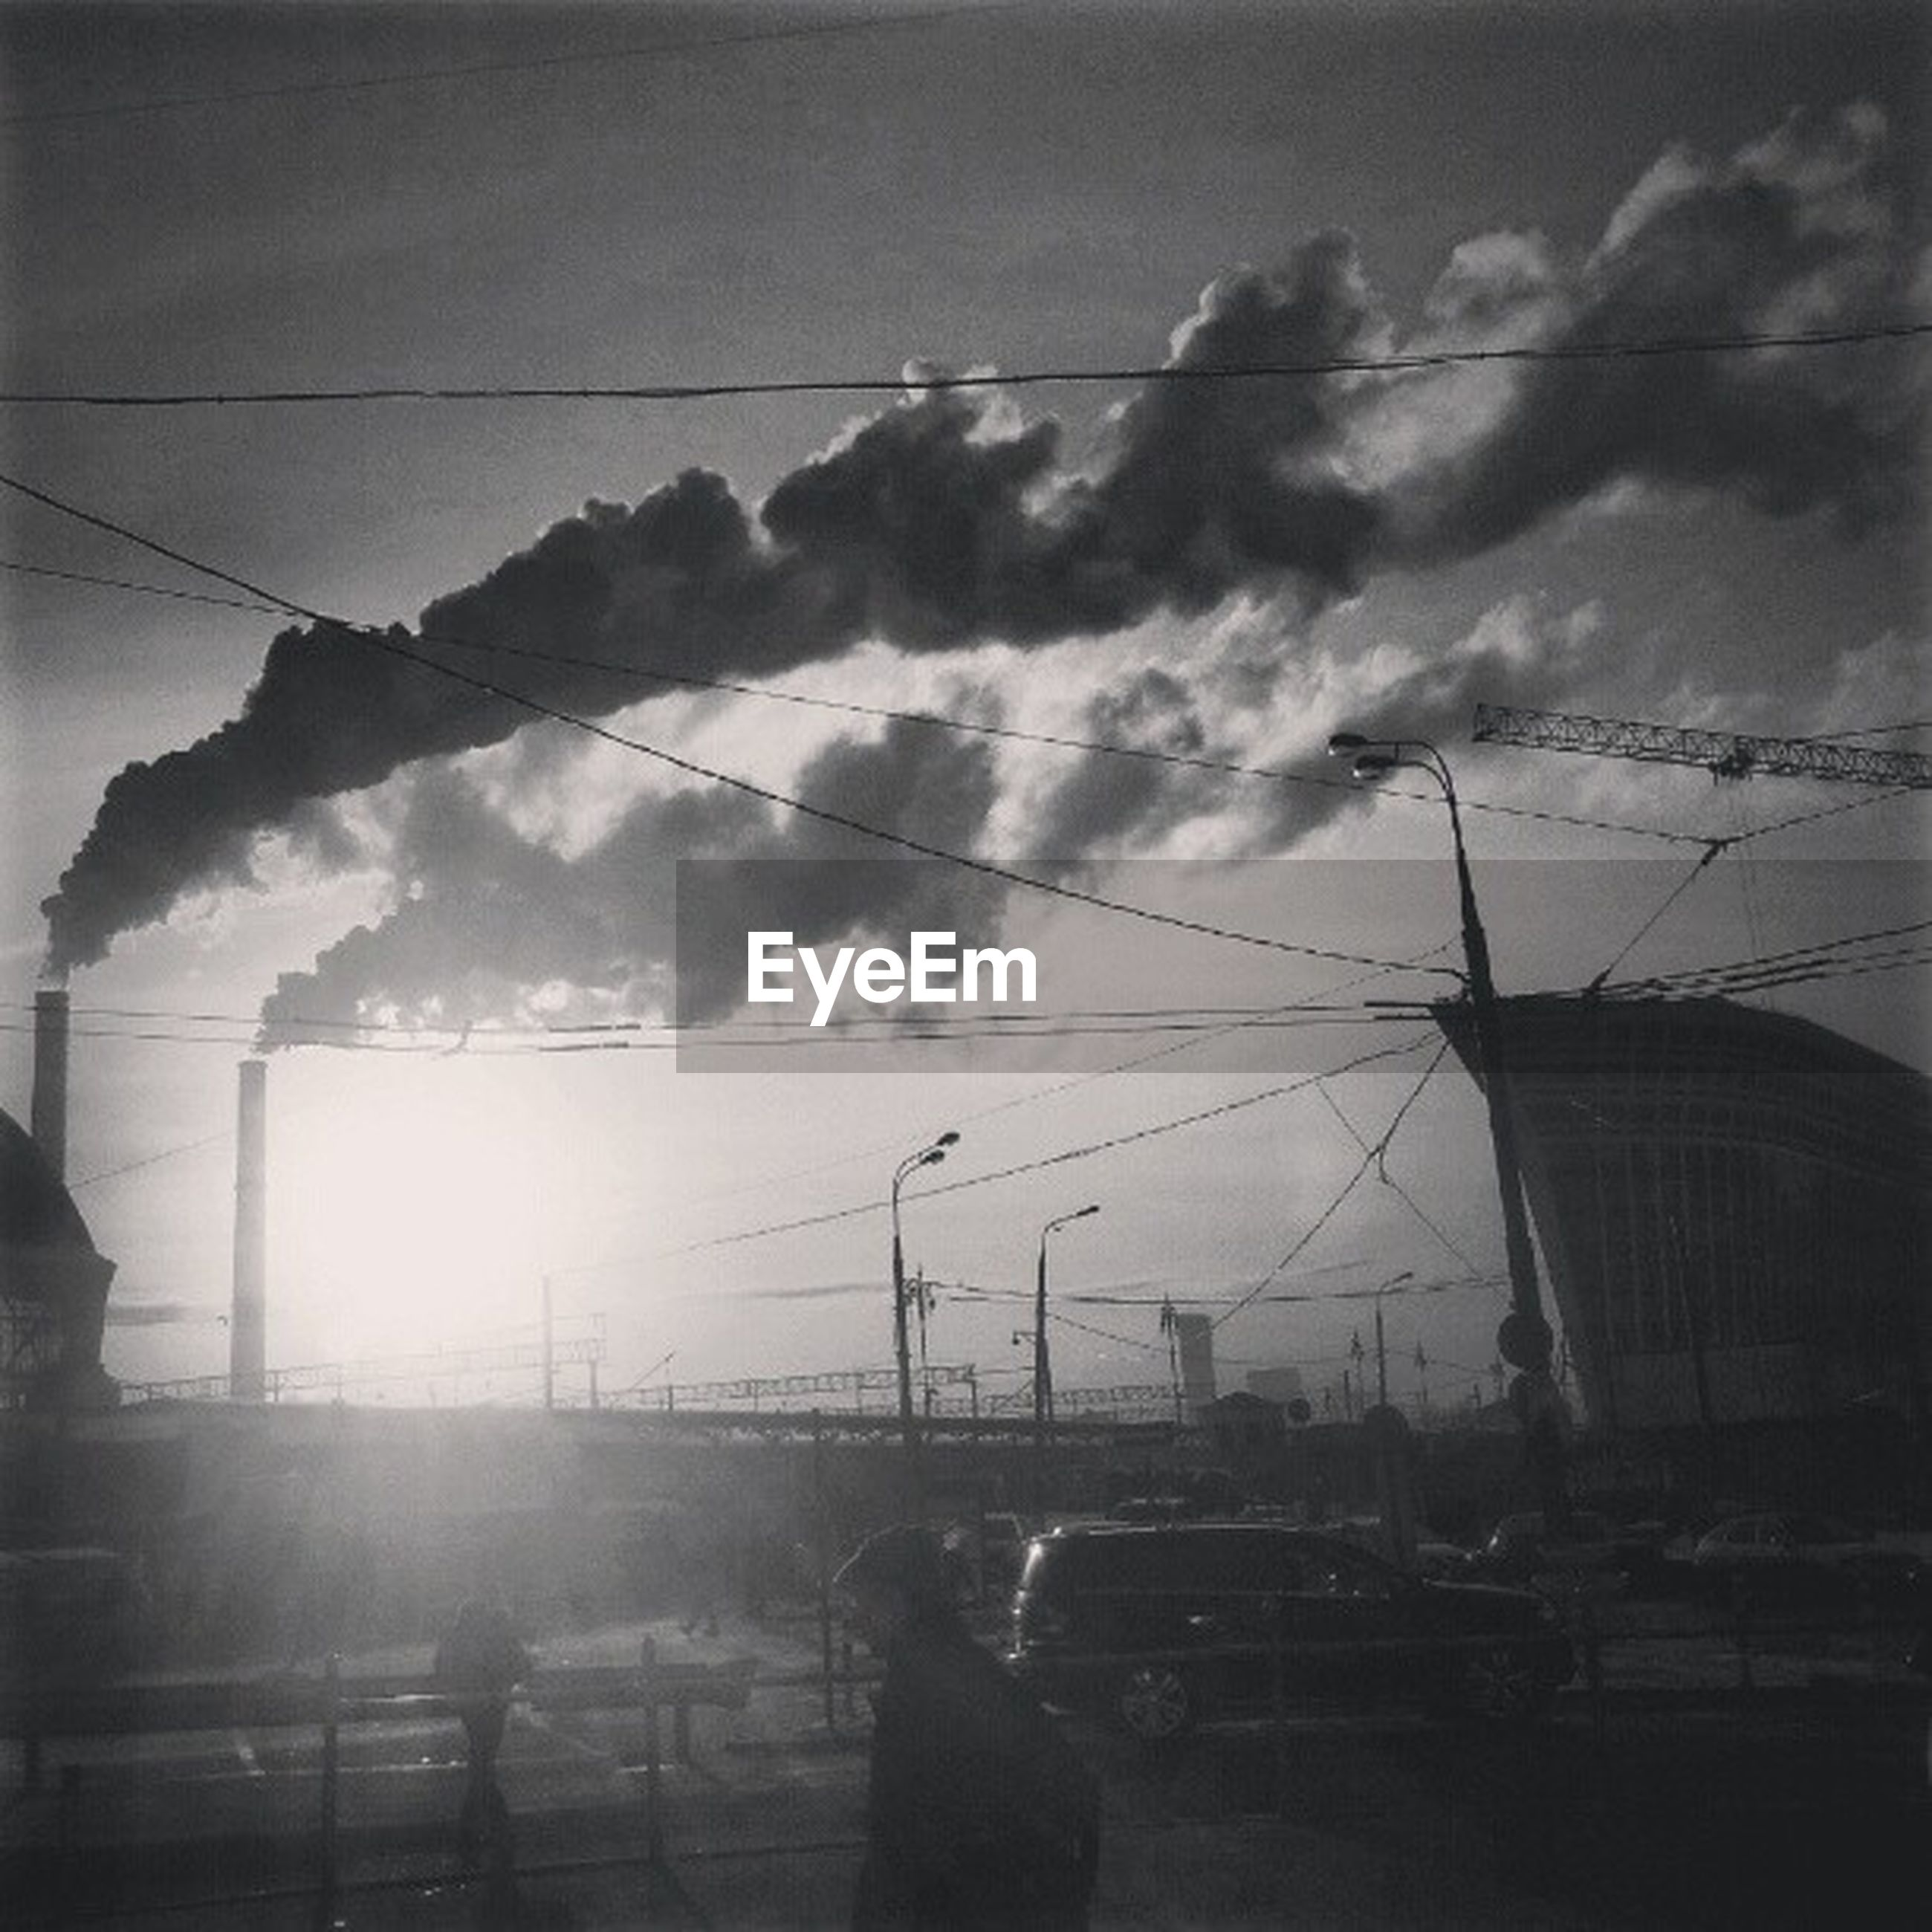 sky, cloud - sky, building exterior, built structure, architecture, cloudy, power line, electricity pylon, fuel and power generation, cloud, sunset, crane - construction machinery, construction site, transportation, power supply, electricity, industry, low angle view, technology, silhouette